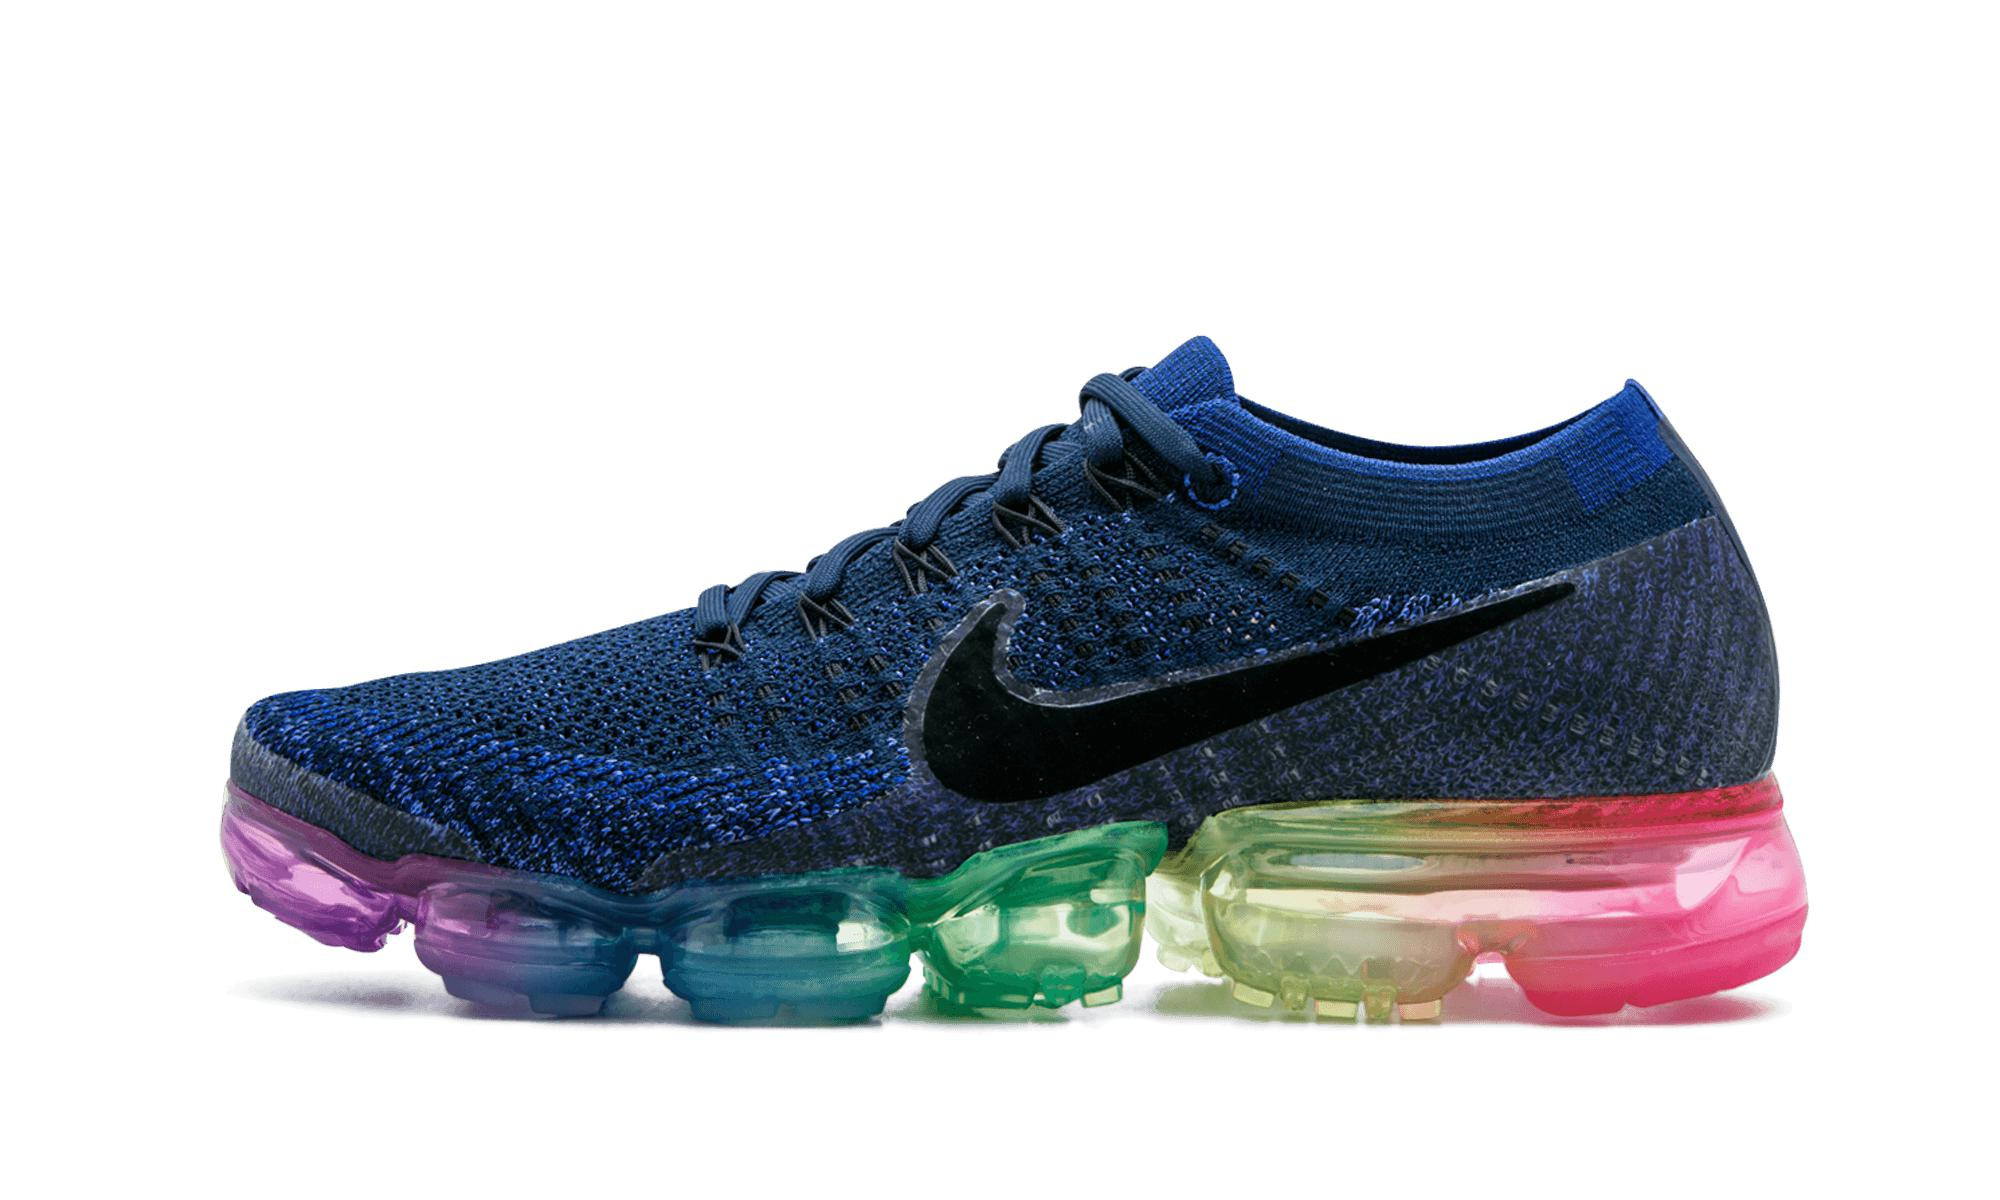 b80900997a4eb Lyst - Nike Womens Air Vapormax Flyknit Betrue in Blue